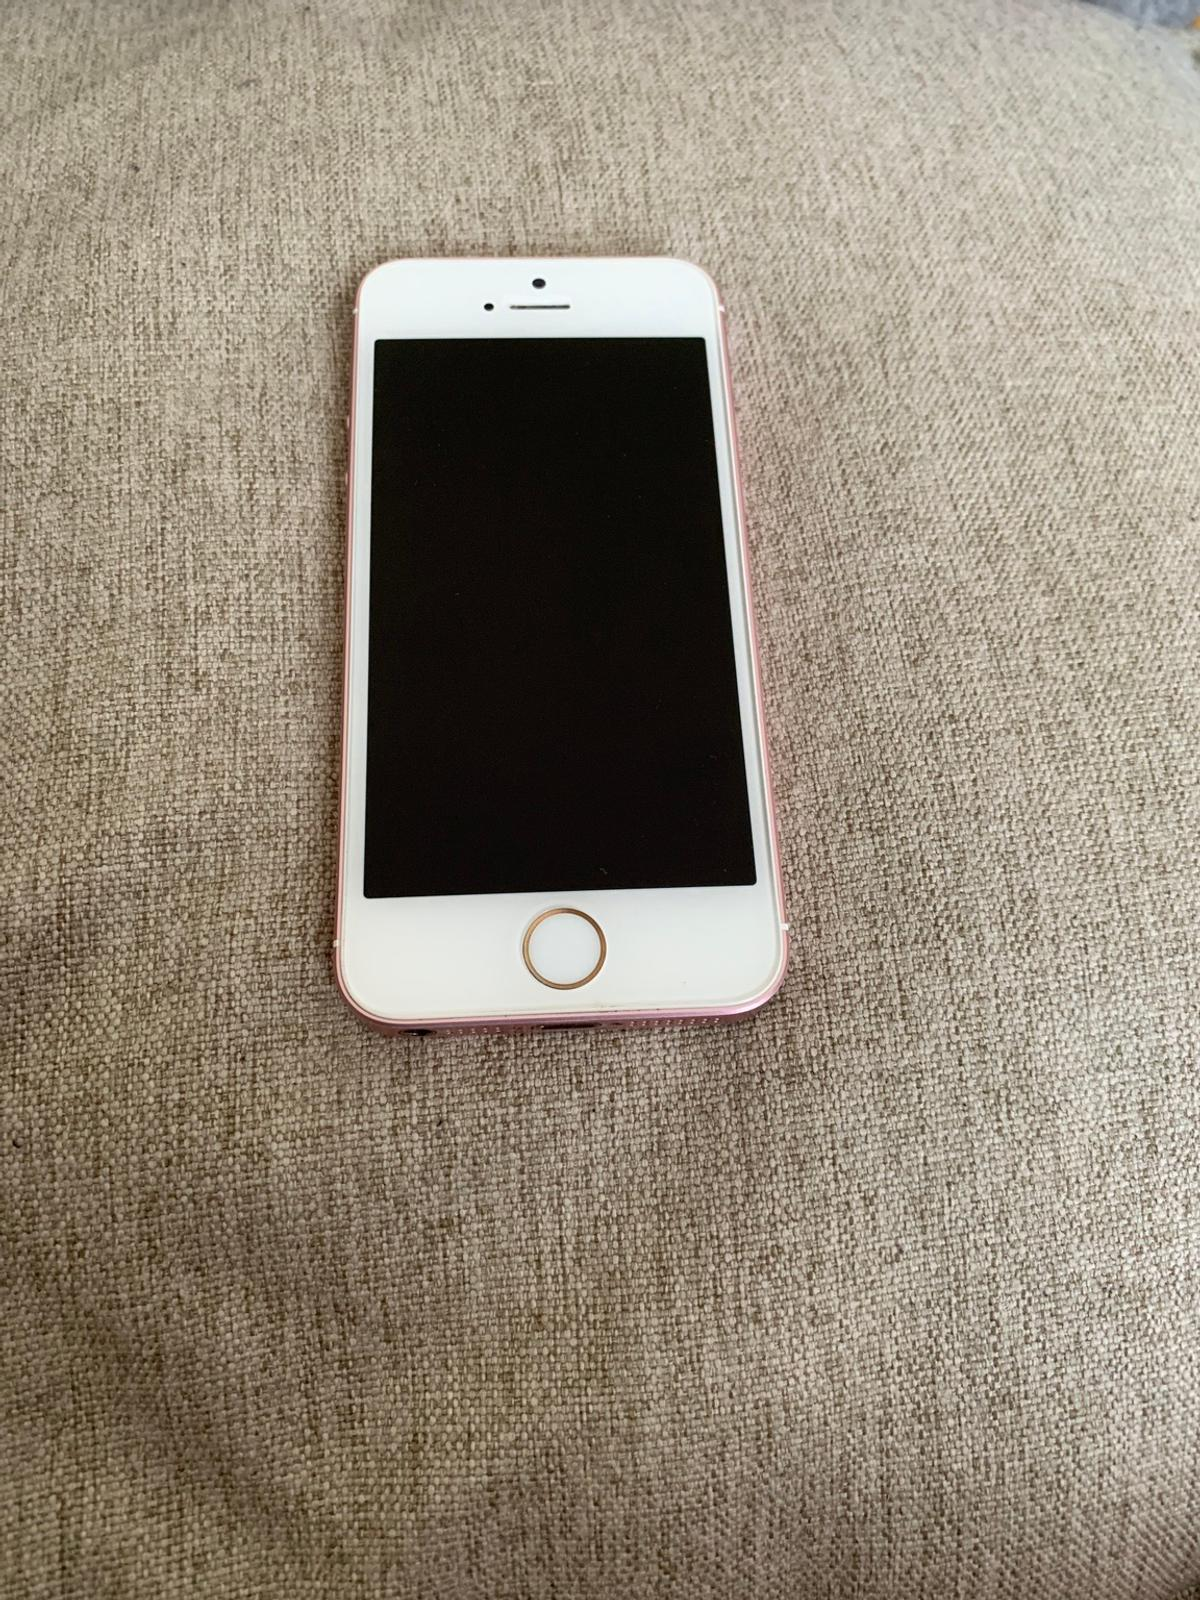 iPhone SE 64GB Rose Gold with box Used in good condition. A few chips to actual phone but not on screen. Collection only - S8 Cash on collection 07368491447